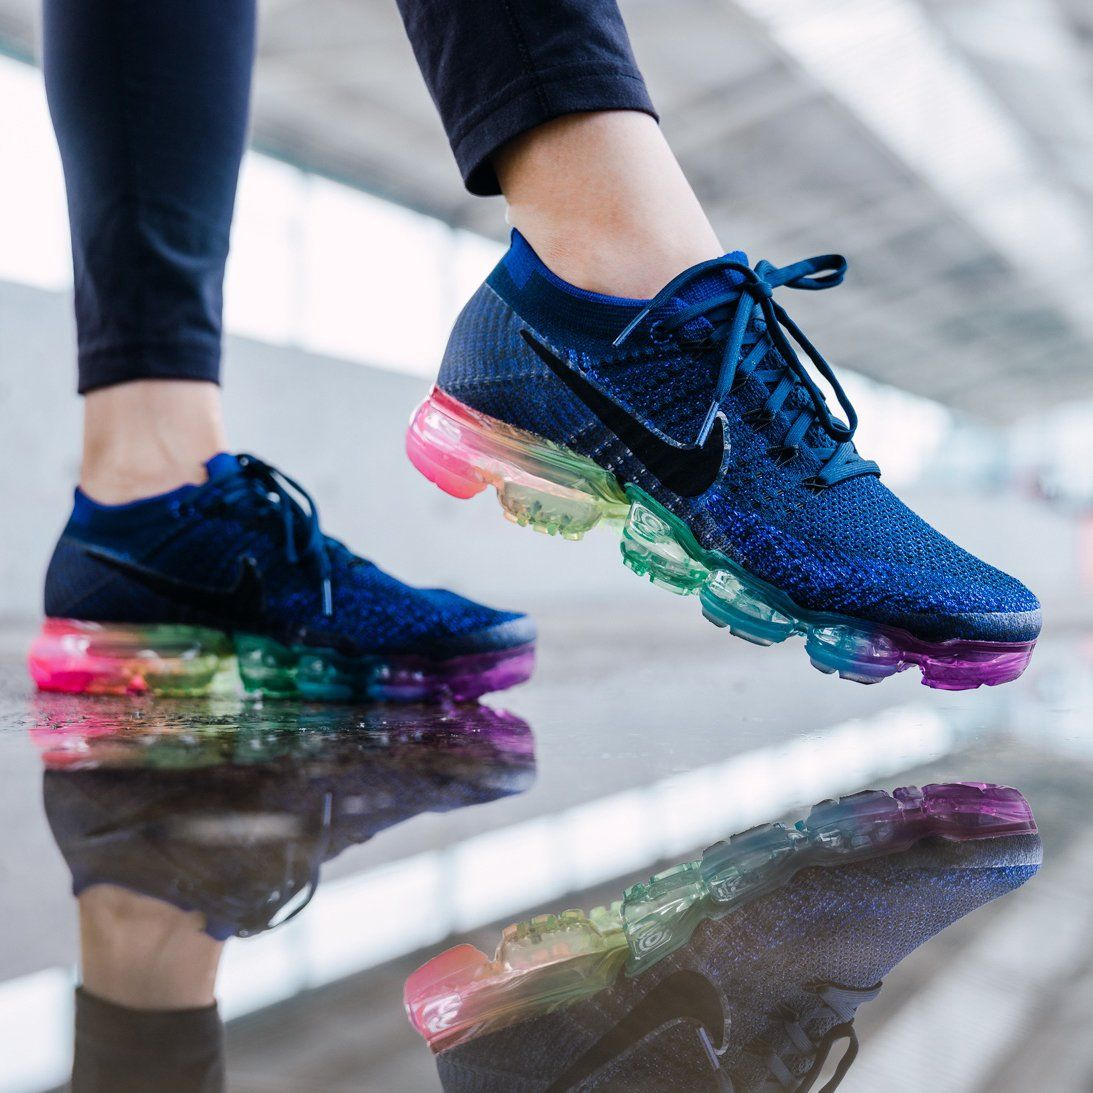 Nike Air Vapormax Flyknit Colors